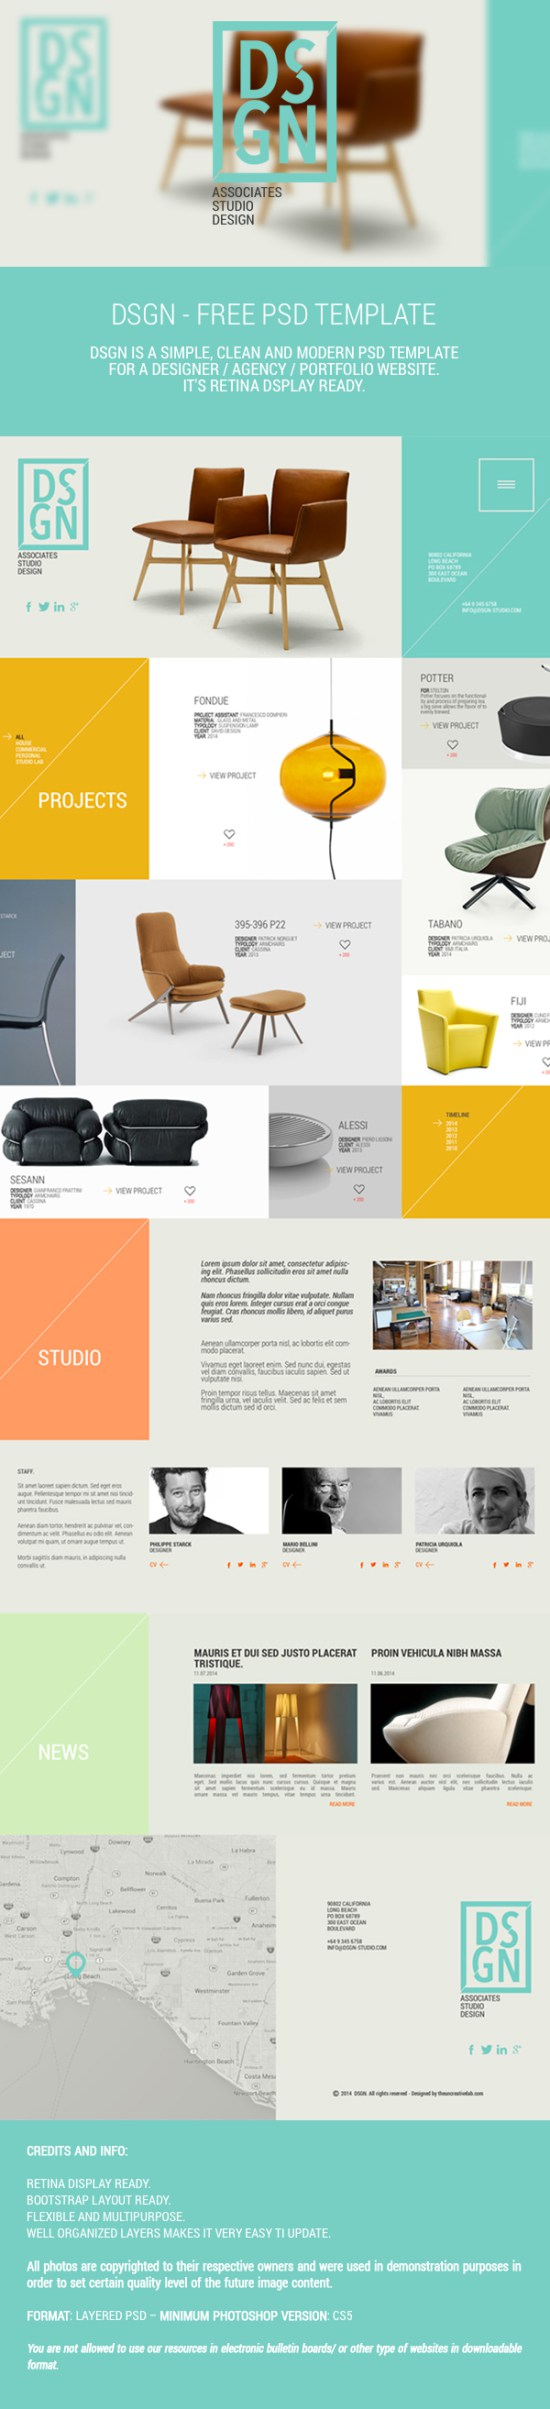 Free psd website theme template by designhub719 on deviantart for Free online drawing websites